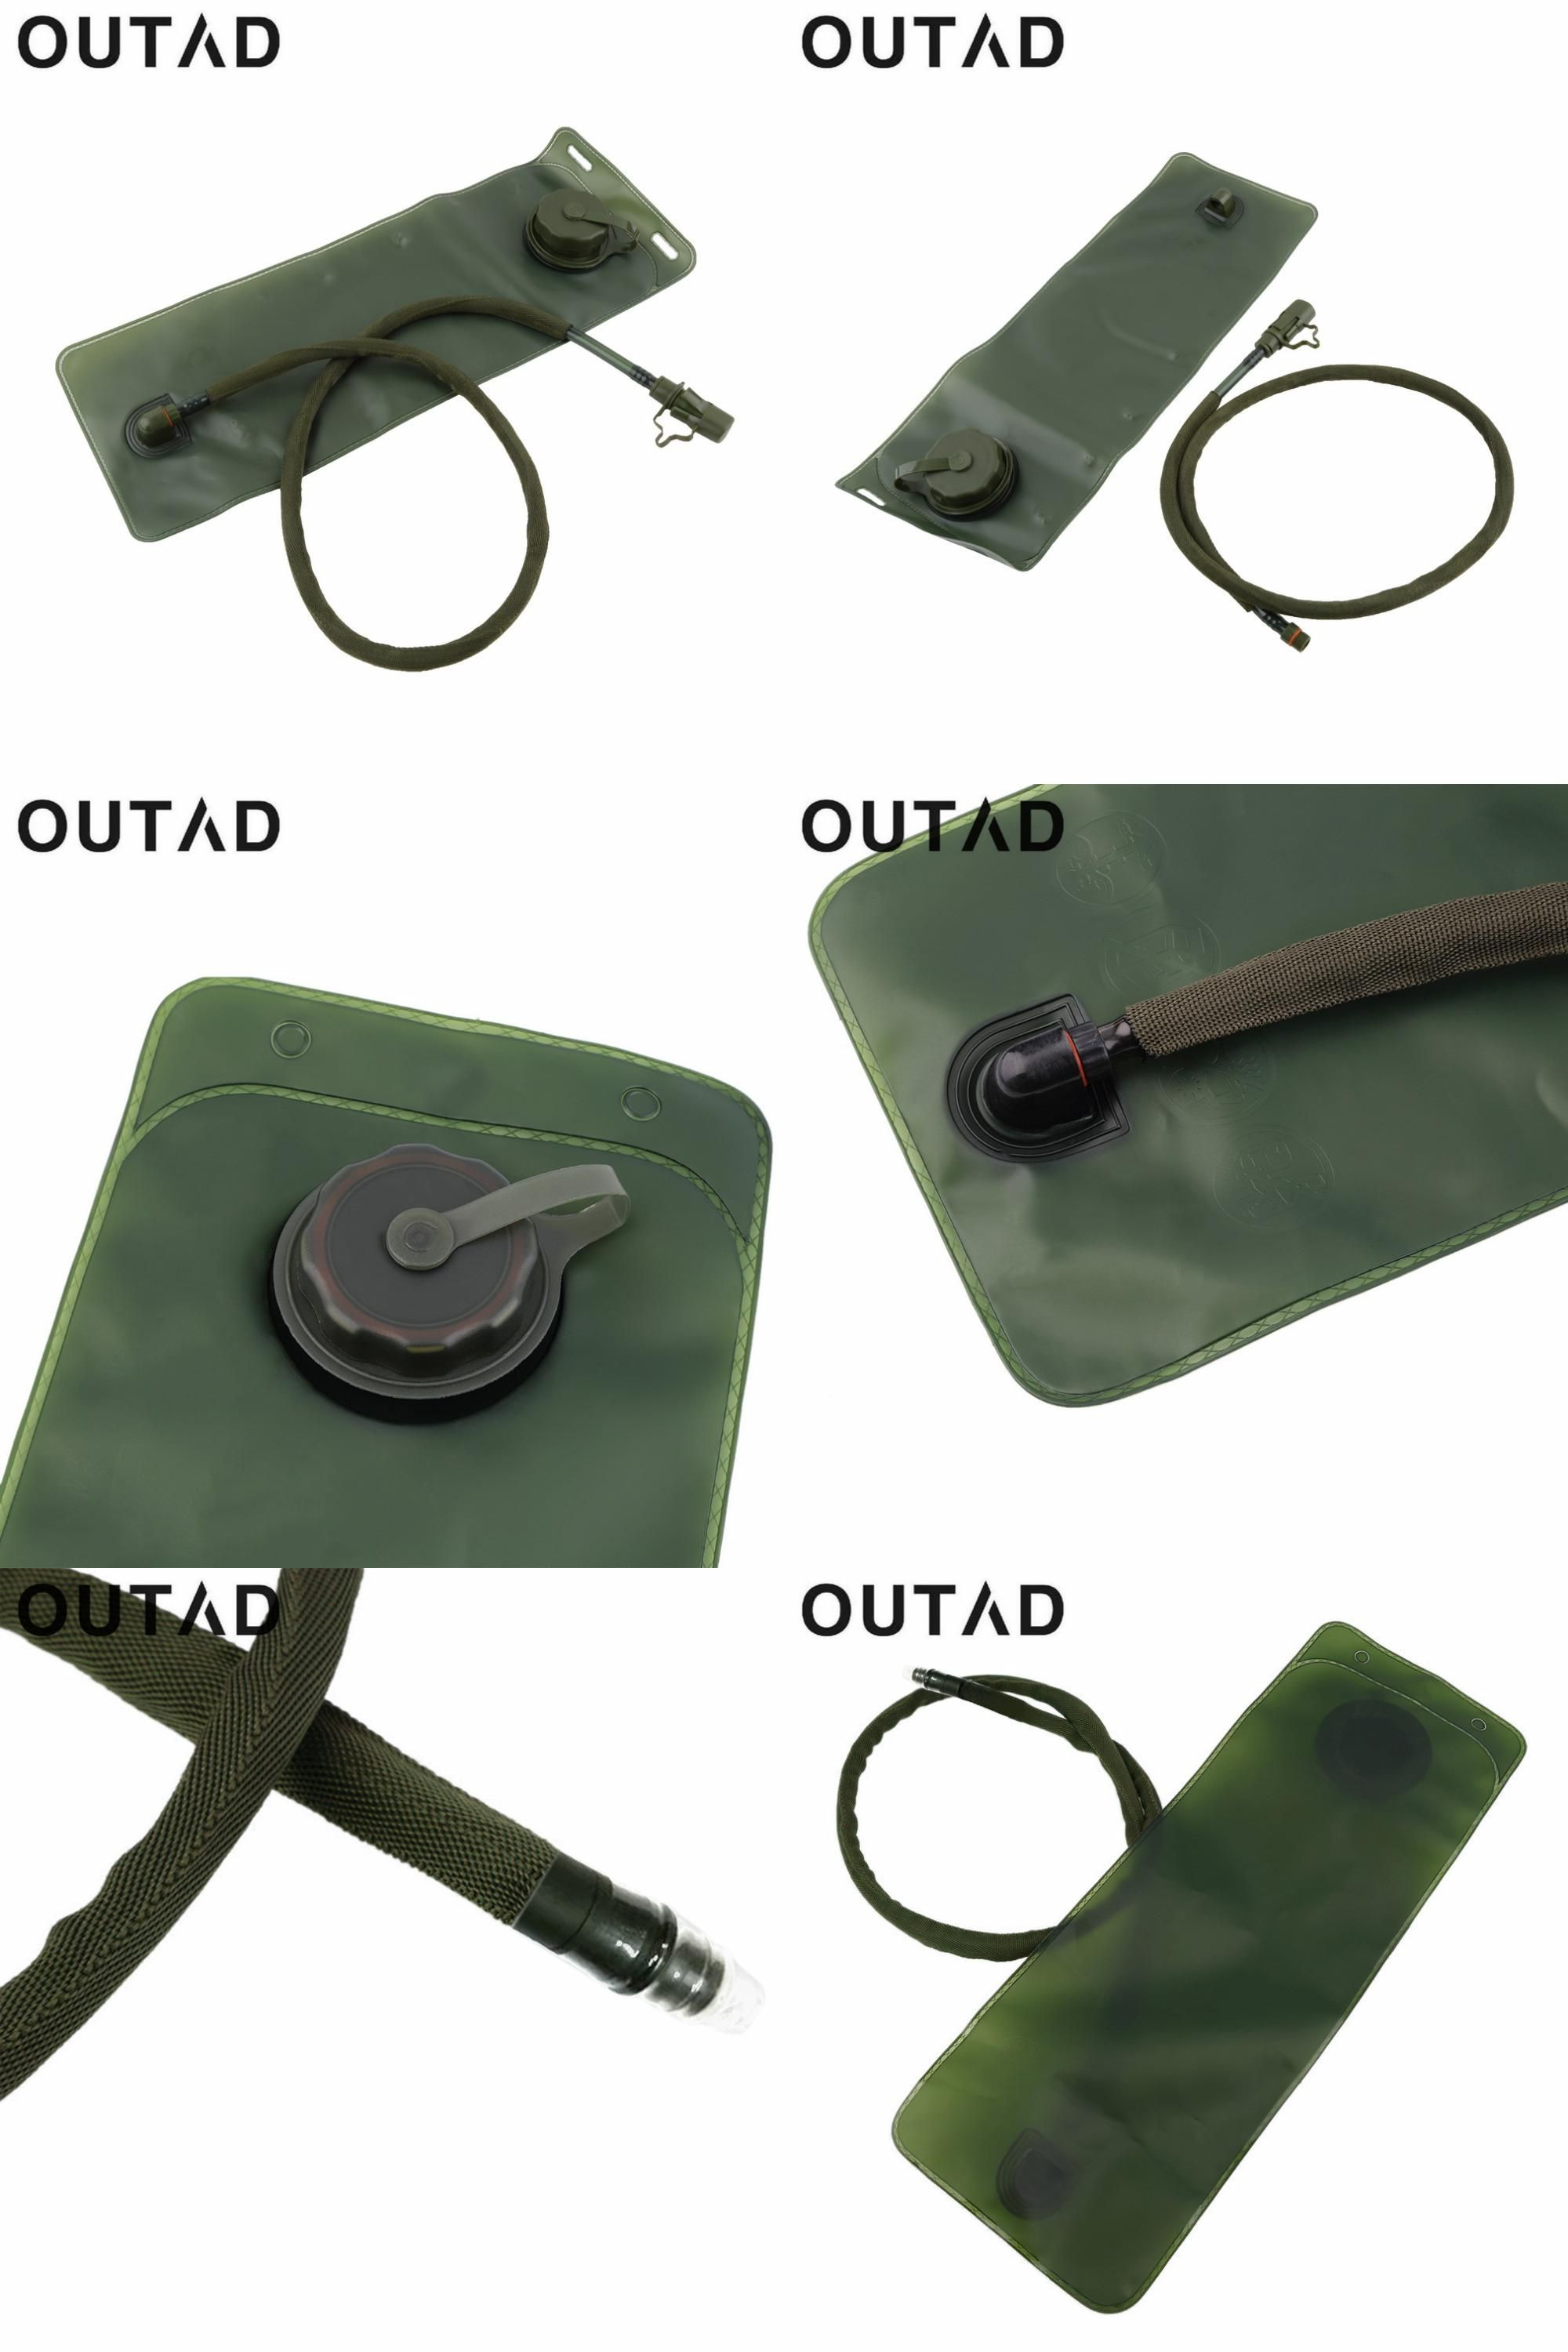 Visit to Buy] OUTAD 3L Water Bag Bladder Climbing Hydration System ...